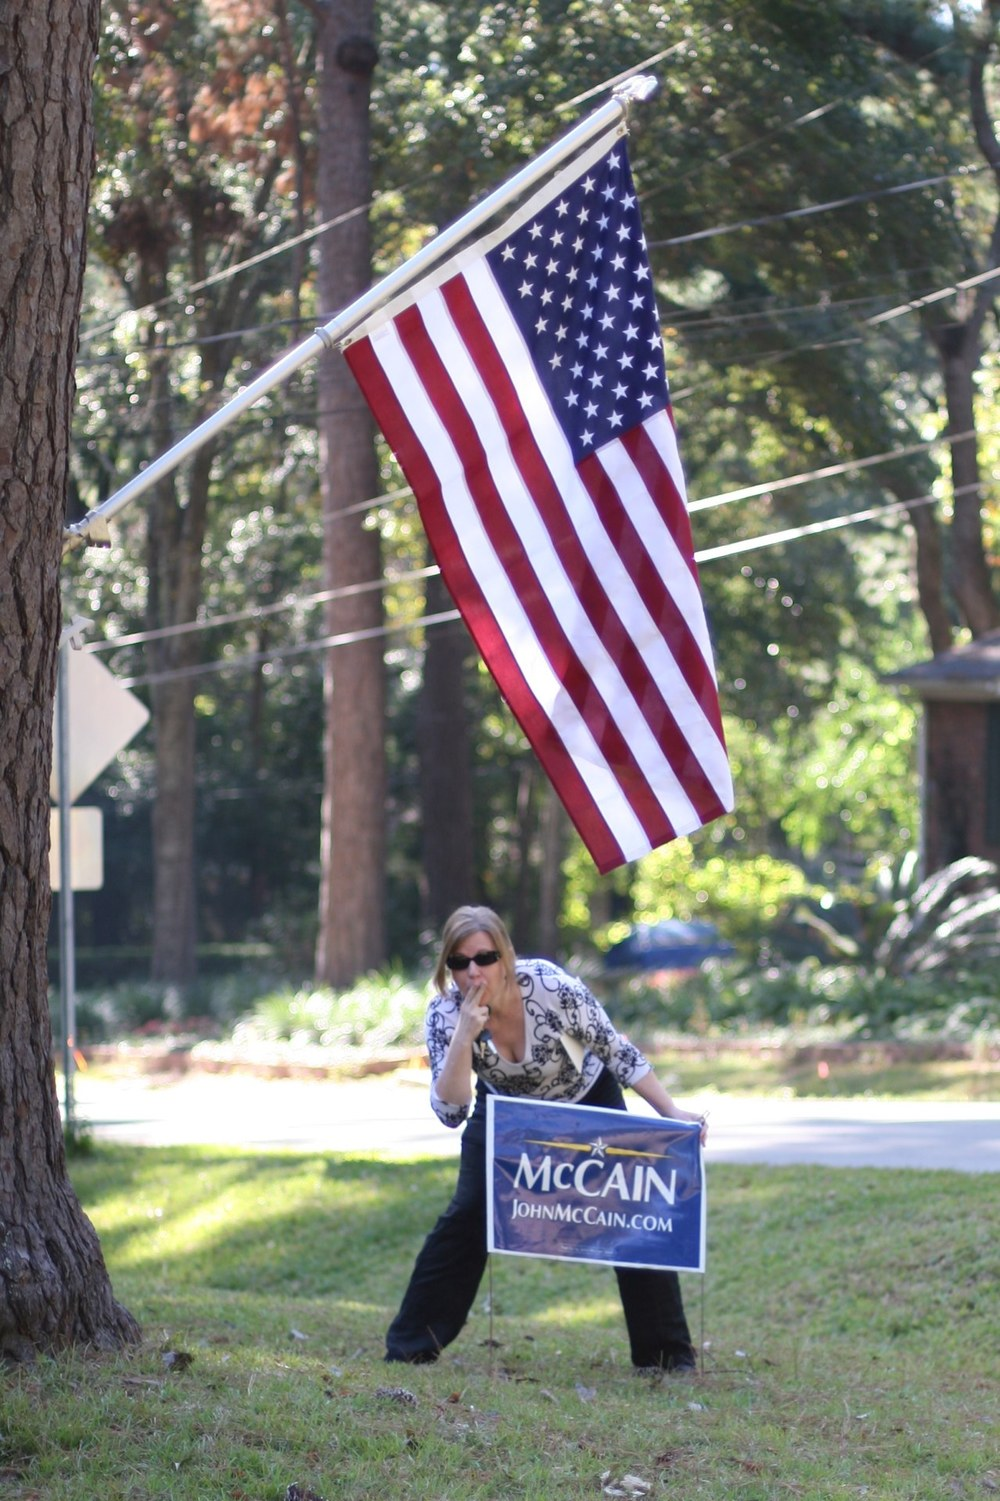 on election eve... my friend, liz, is trying to steal my mcCain sign.  where is the civility? she needs a muffin....